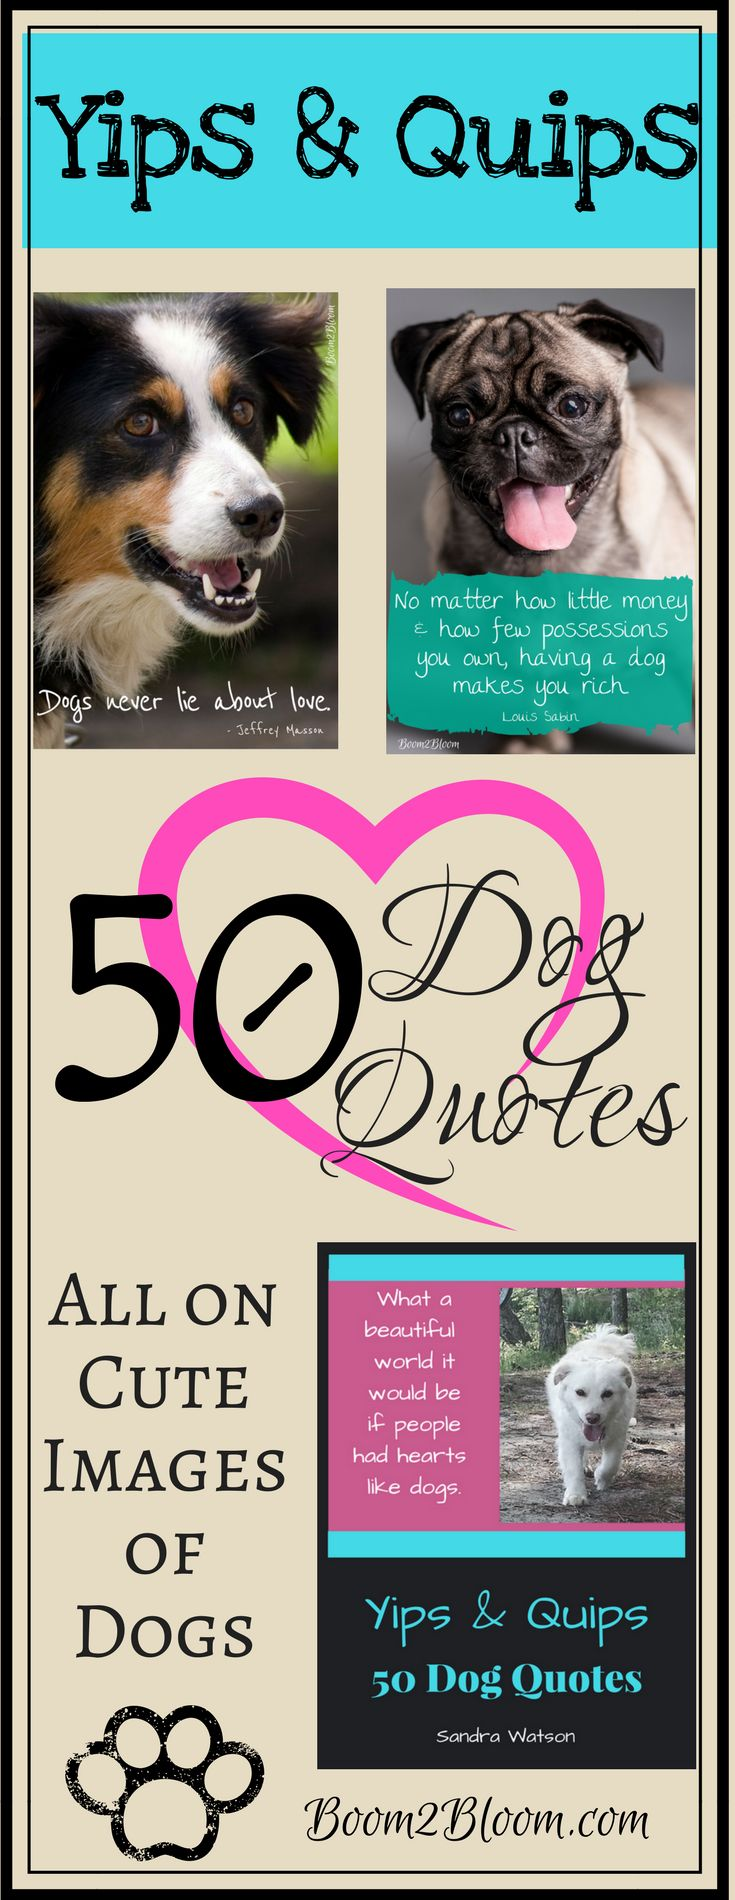 Yips & Quips: 50 Dog Quotes eBook contains 50 quotes about the unconditional love, pure soul and absolute devotion of dogs. Each quote is written on a gorgeous image of a dog or on fun graphics. Print off as an eBook or by individual pages for framing. 52 pages. Dogs are easy to understand–they love and want to be loved! Dog Quotes. By Sandra Watson. Pets. Dogs eBook. #DogQuotes #Dogs #Pets #DogEBook #Puppies #Quotes #Animals #PetQuotes #DogArt